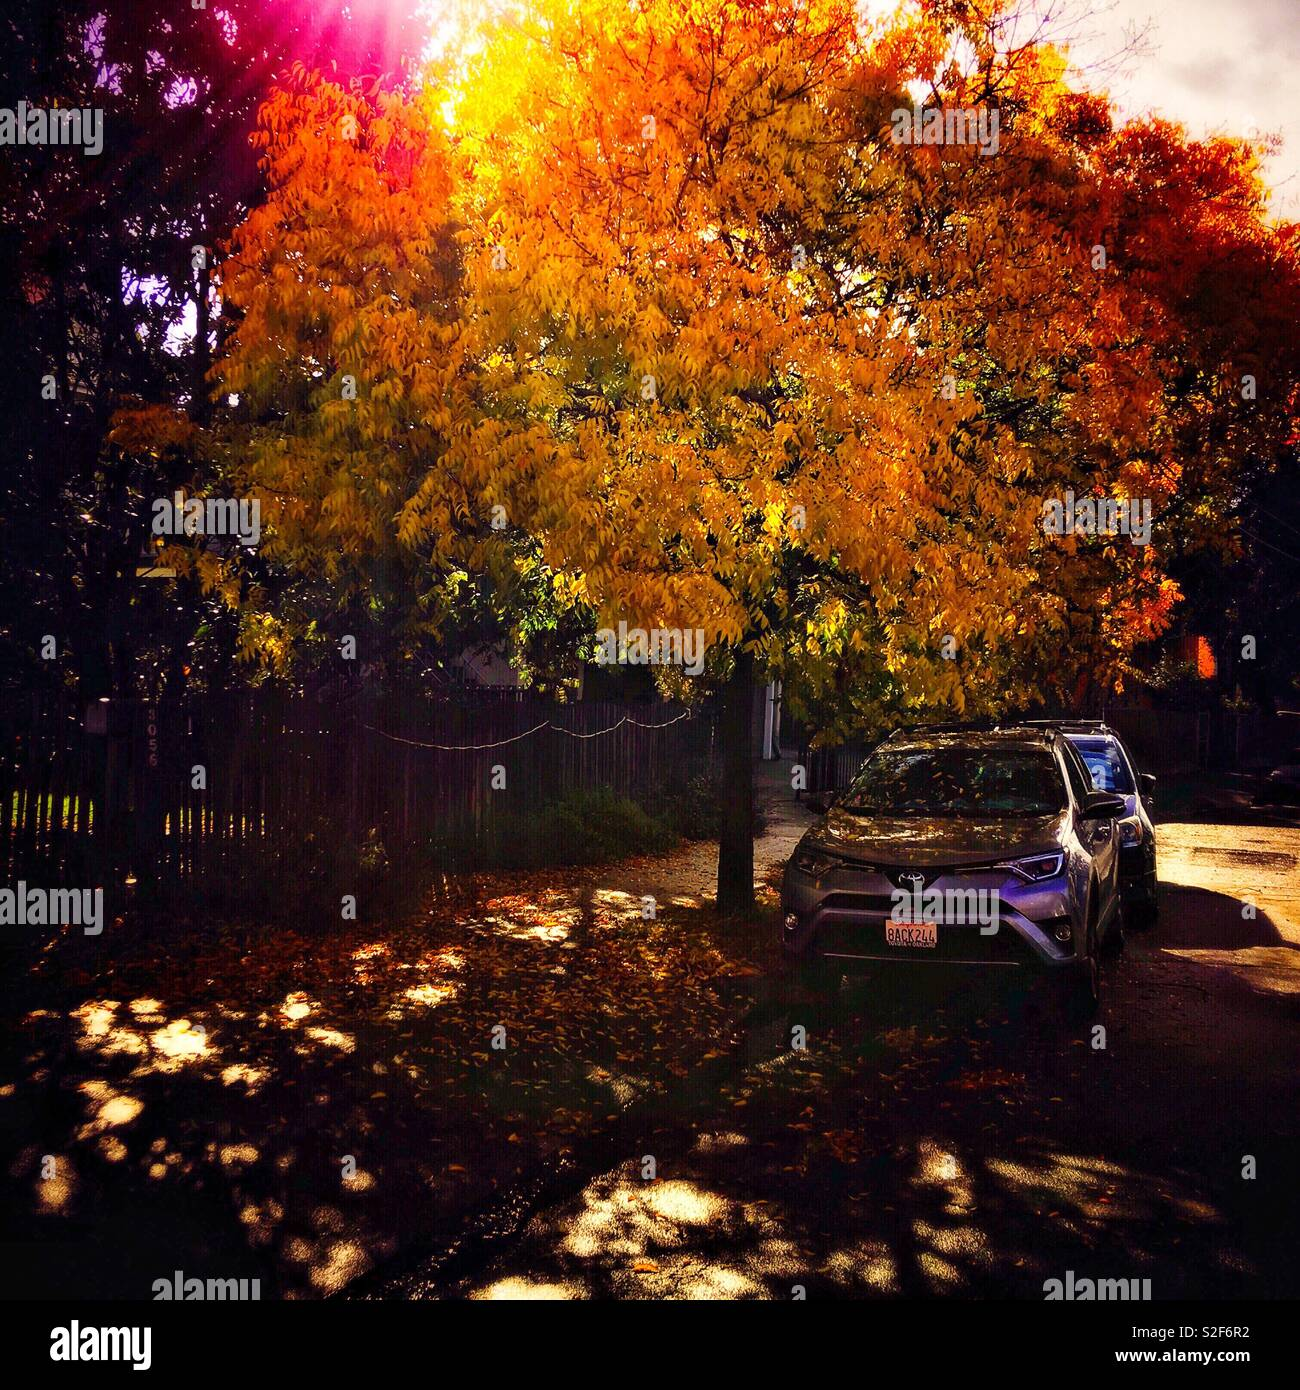 Along the pavement, on its right, cars are parking by the roadside. On its left, a house in shadow of the area. They all bring out the bright and yellowish leaves of the tree in their middle. Stock Photo